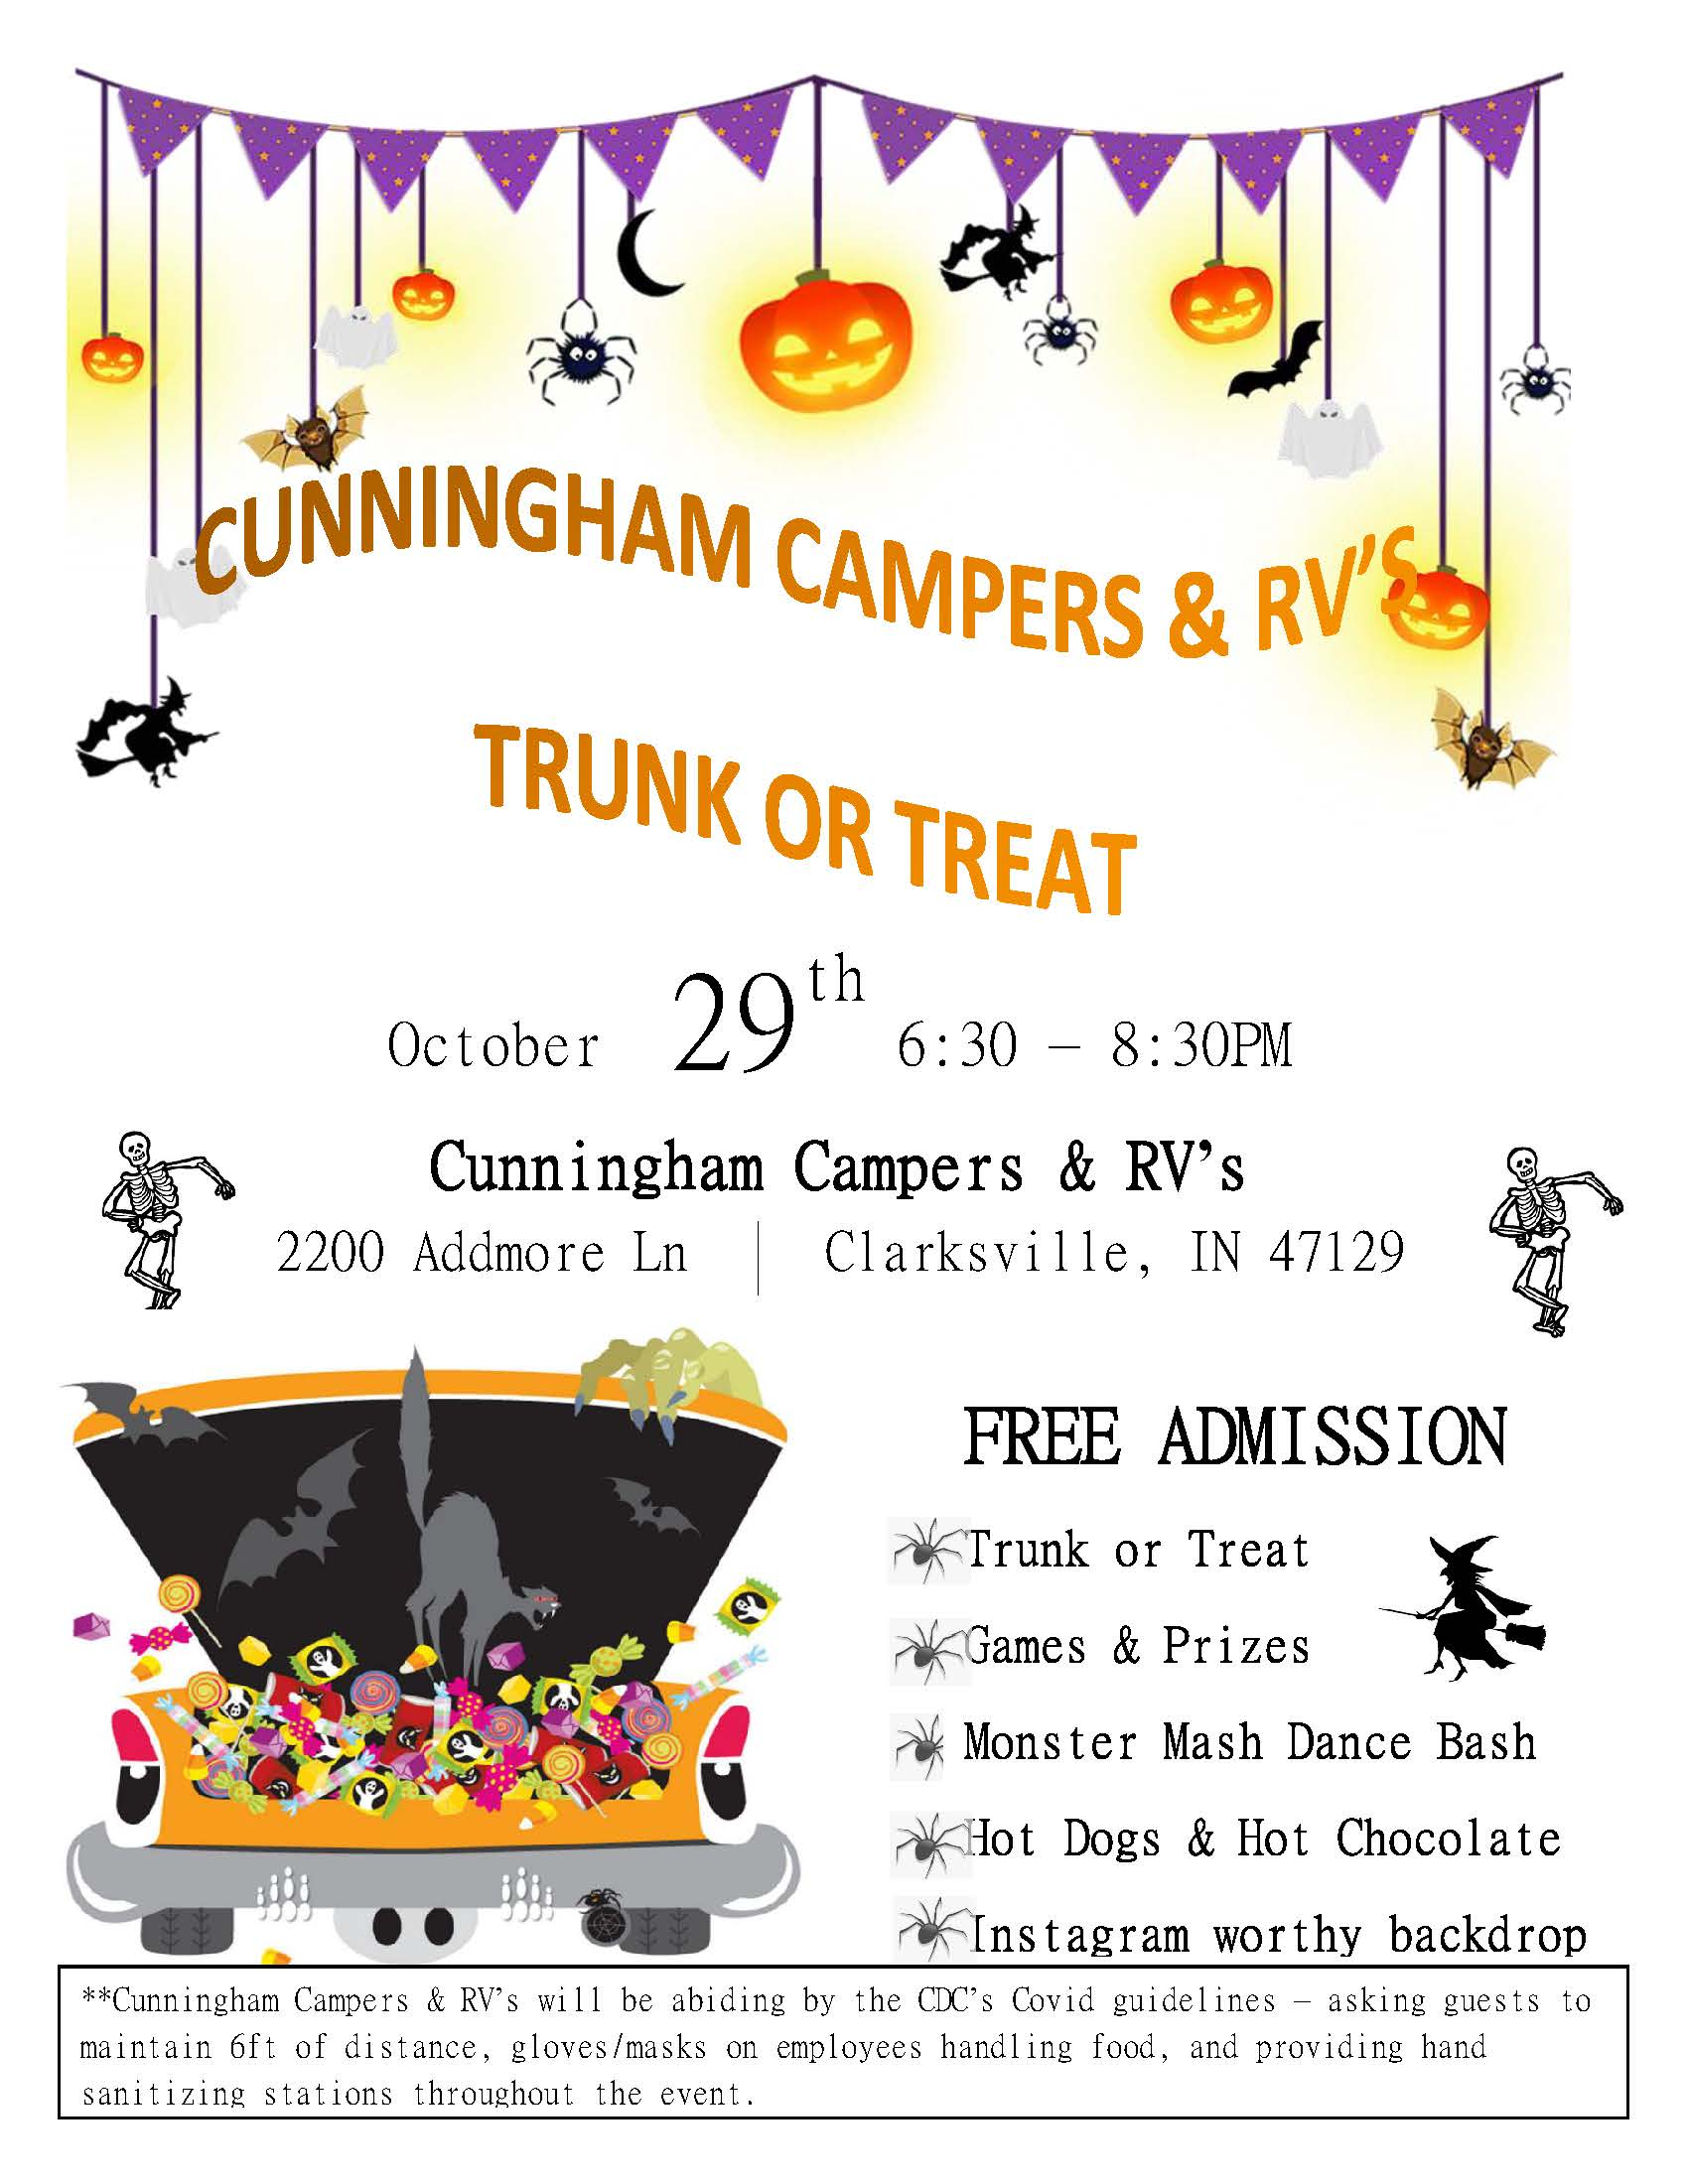 Cunningham Campers 2021 Trunk or Treat